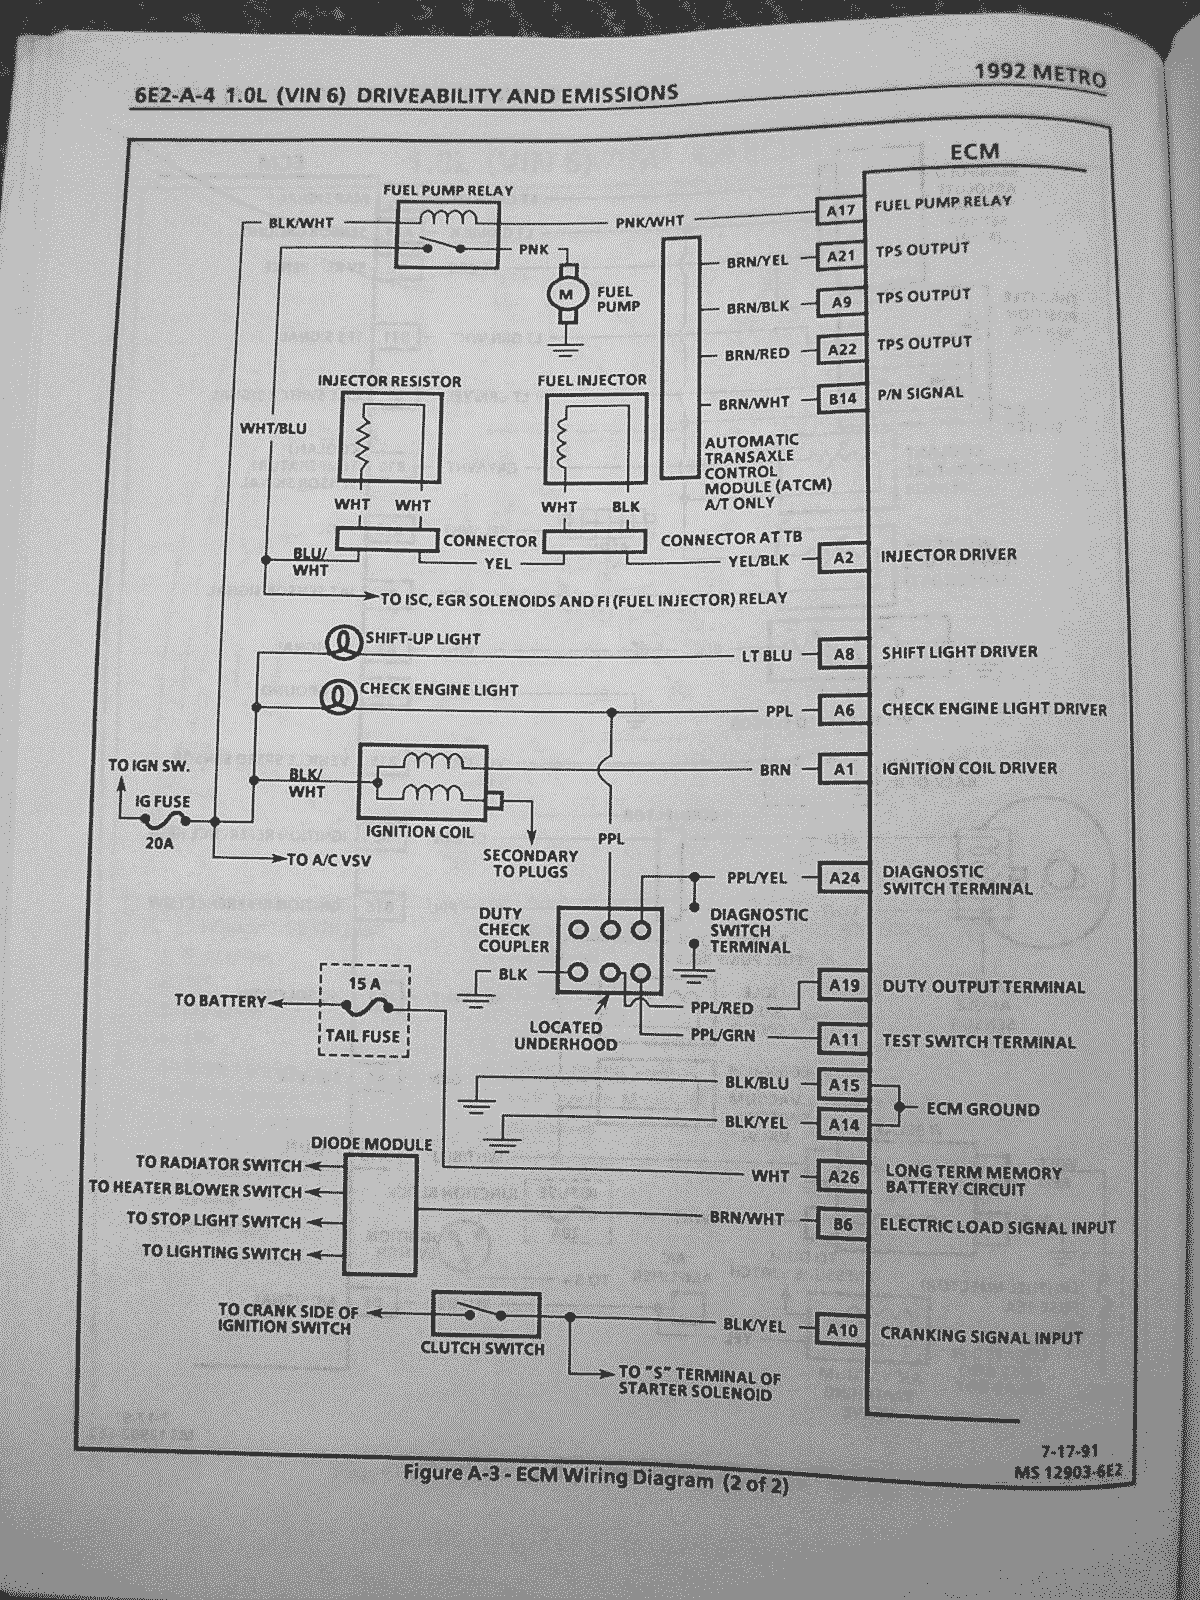 6e2 a 4 geo metro and suzuki swift wiring diagrams metroxfi com 1995 geo metro fuse box diagram at soozxer.org